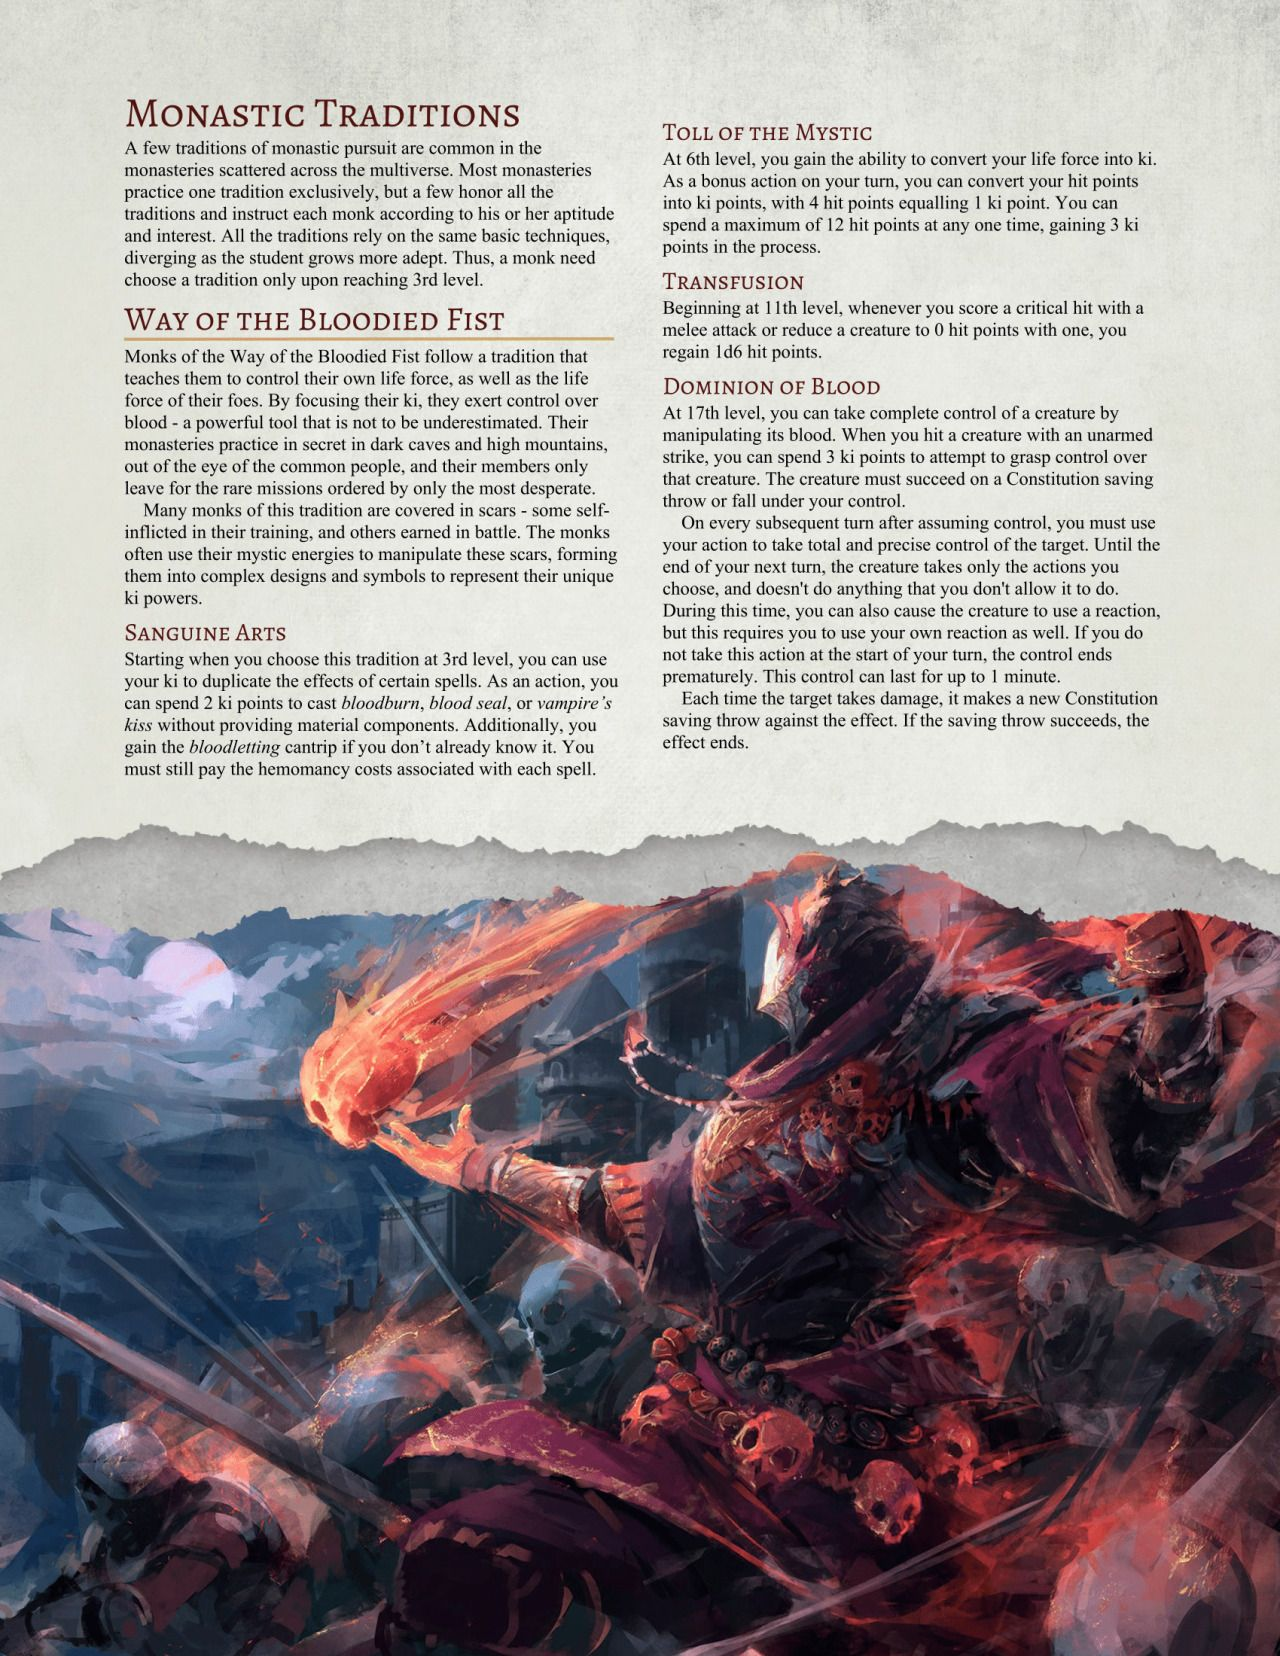 DnD 5e Homebrew — Way of the Bloodied Fist Monk by Jonoman3000 | D&D